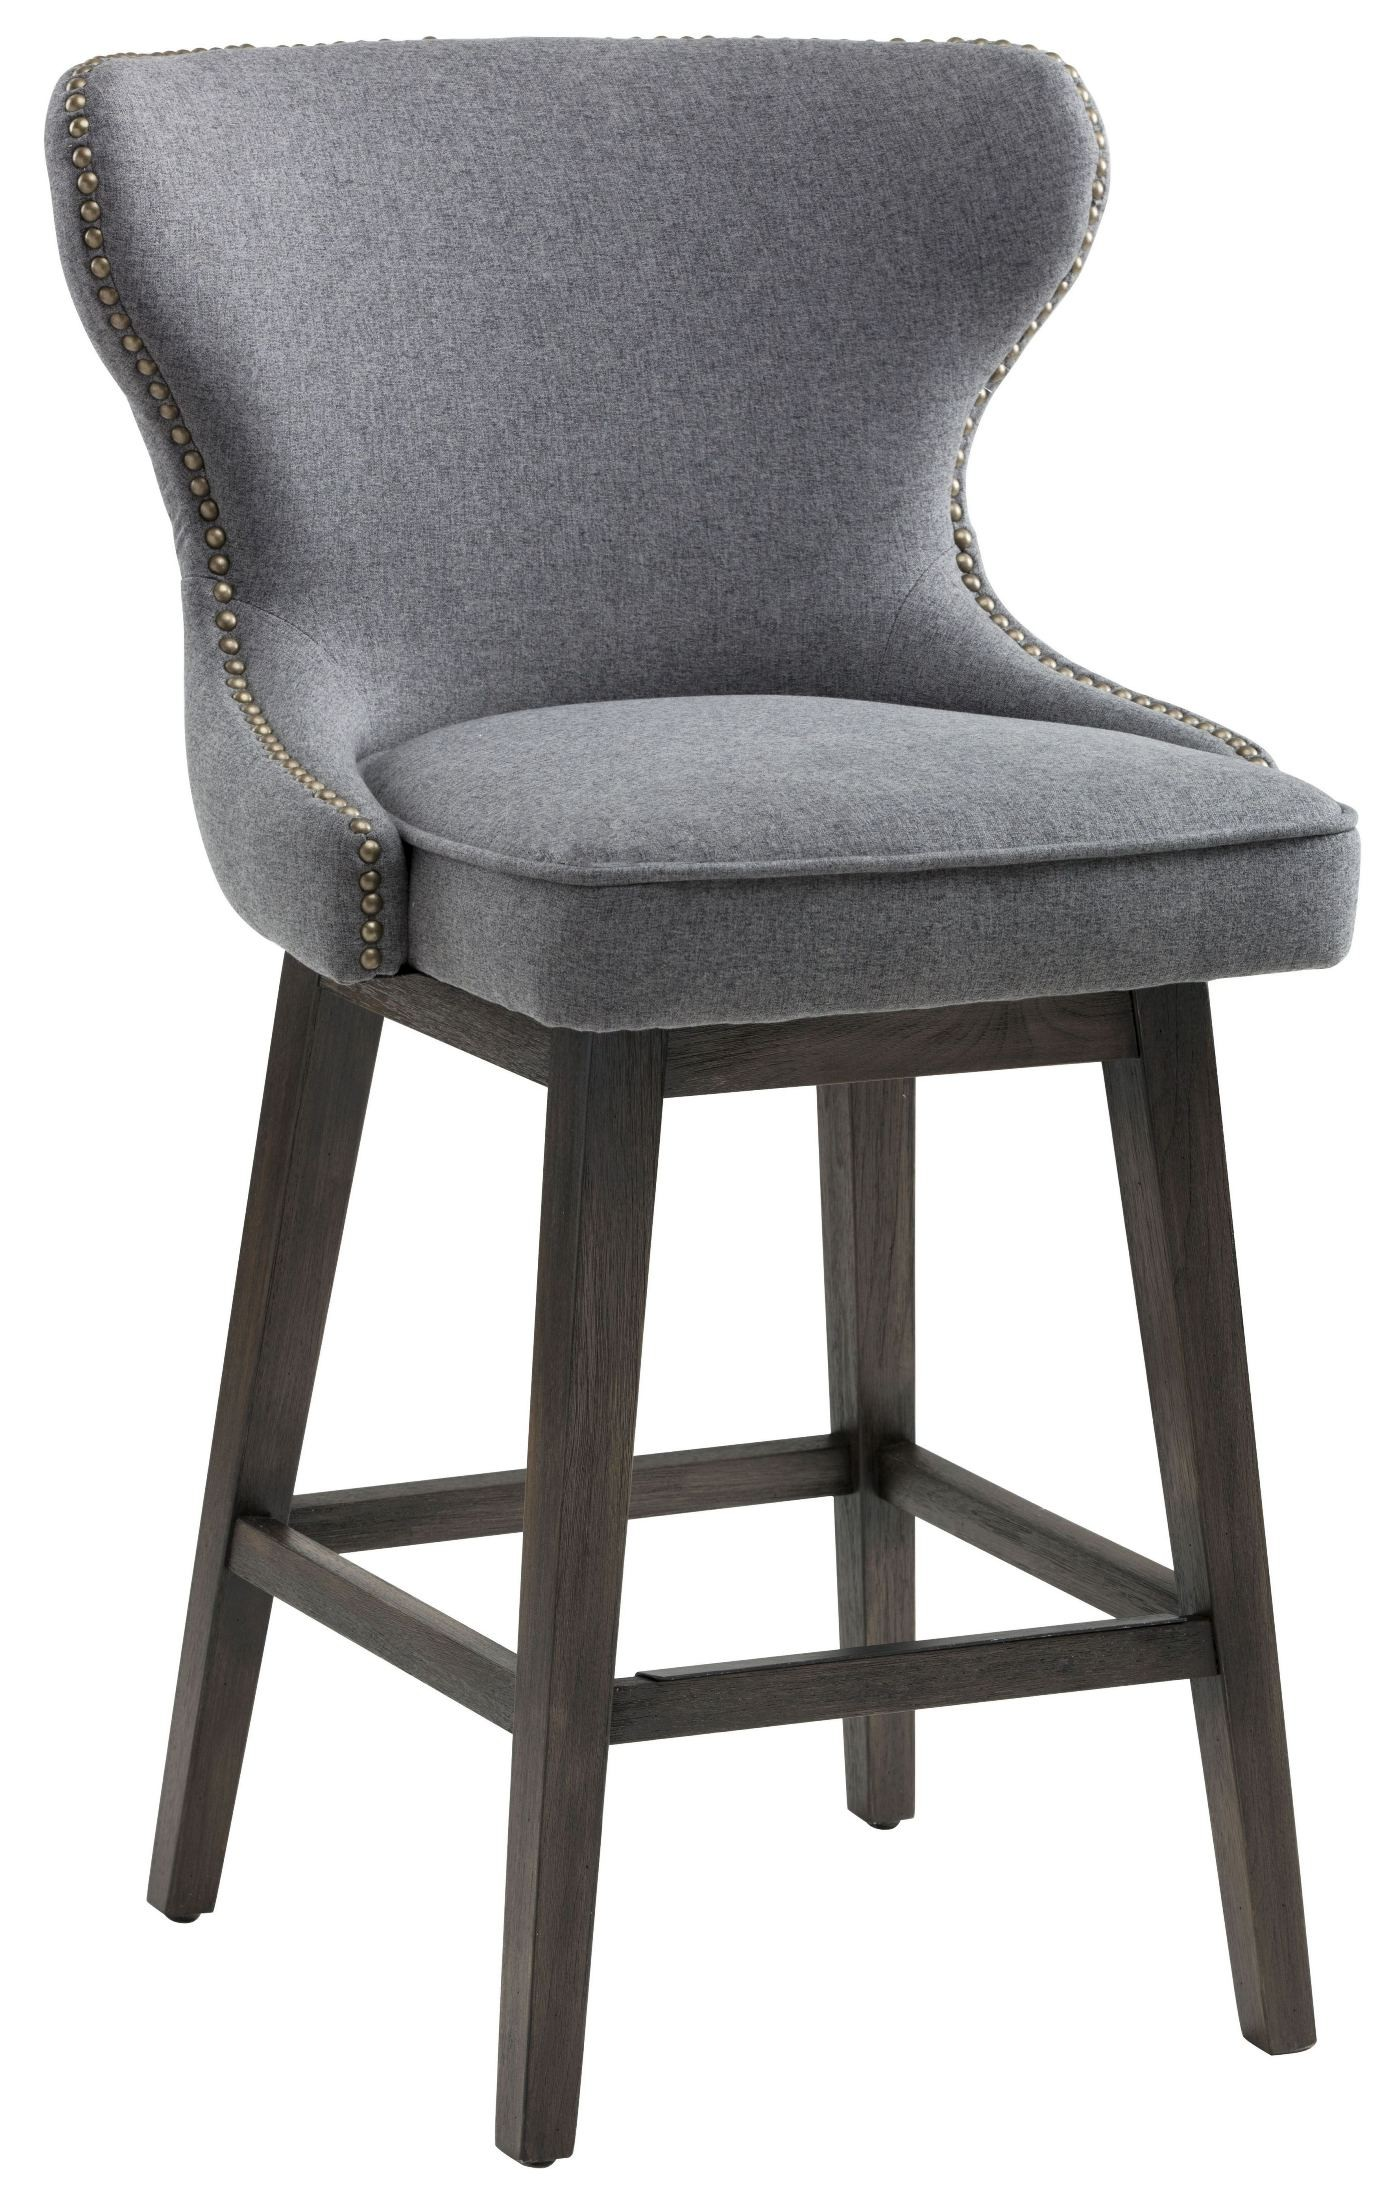 Ariana Dark Grey Fabric Swivel Counter Stool 101153